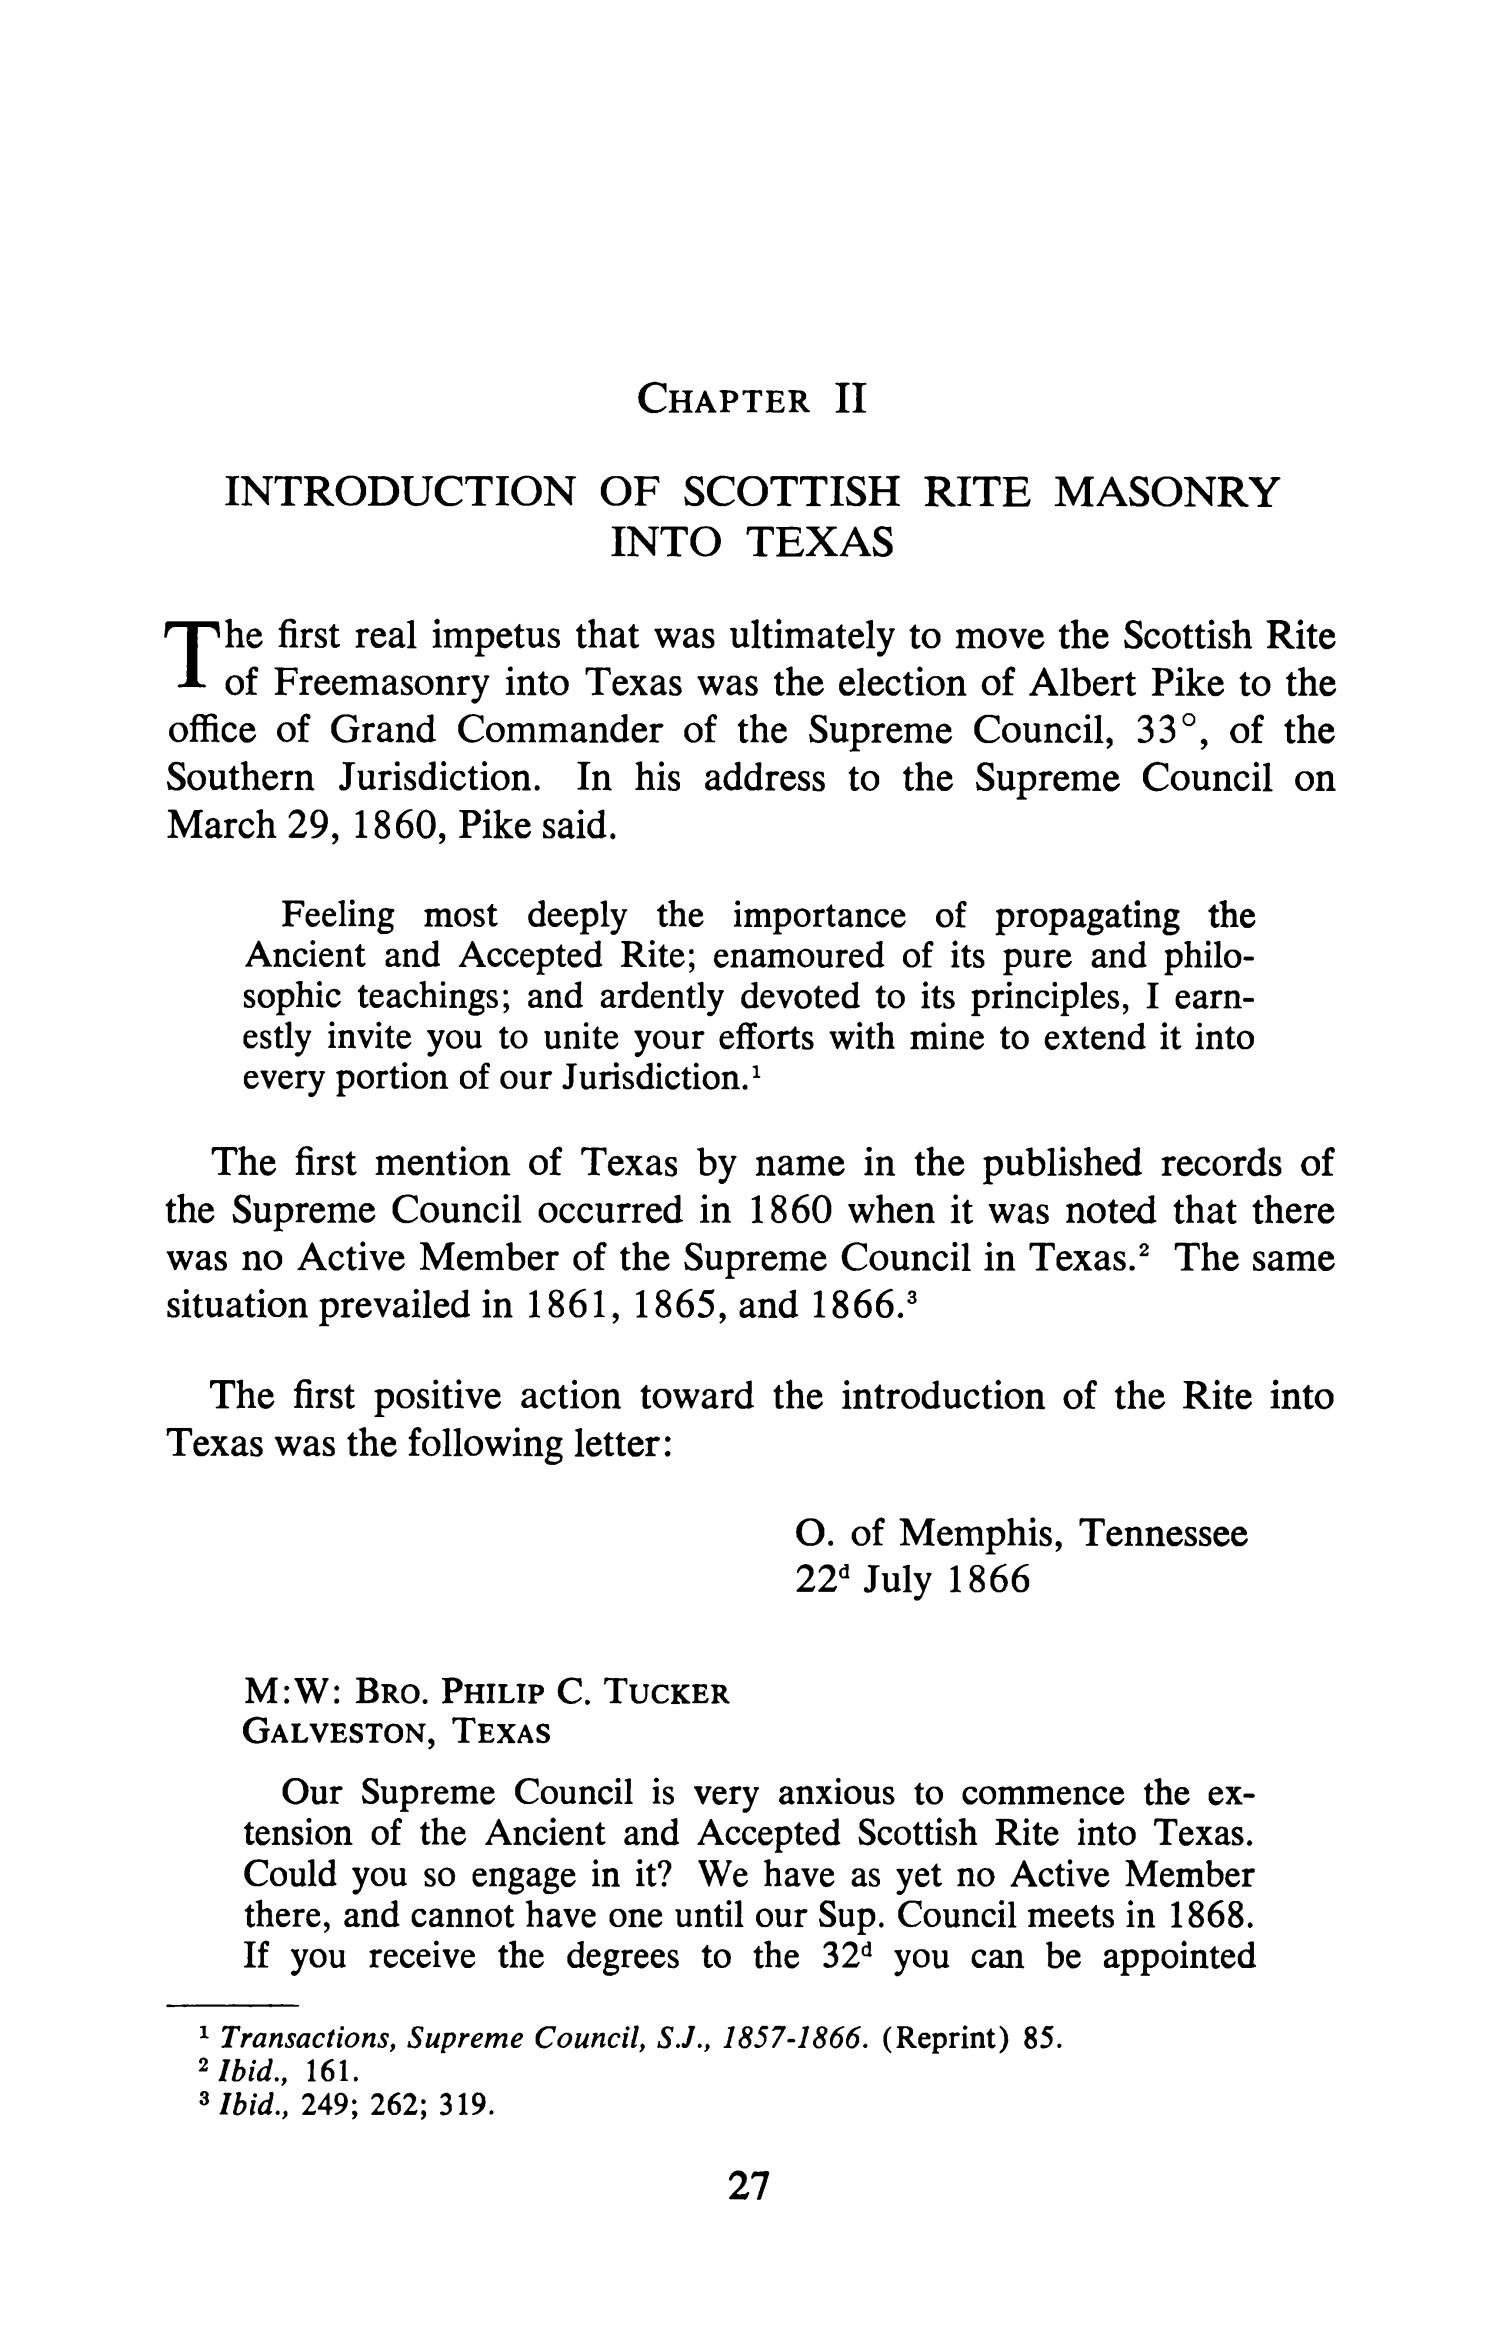 The First Century of Scottish Rite Masonry in Texas, 1867-1967                                                                                                      27